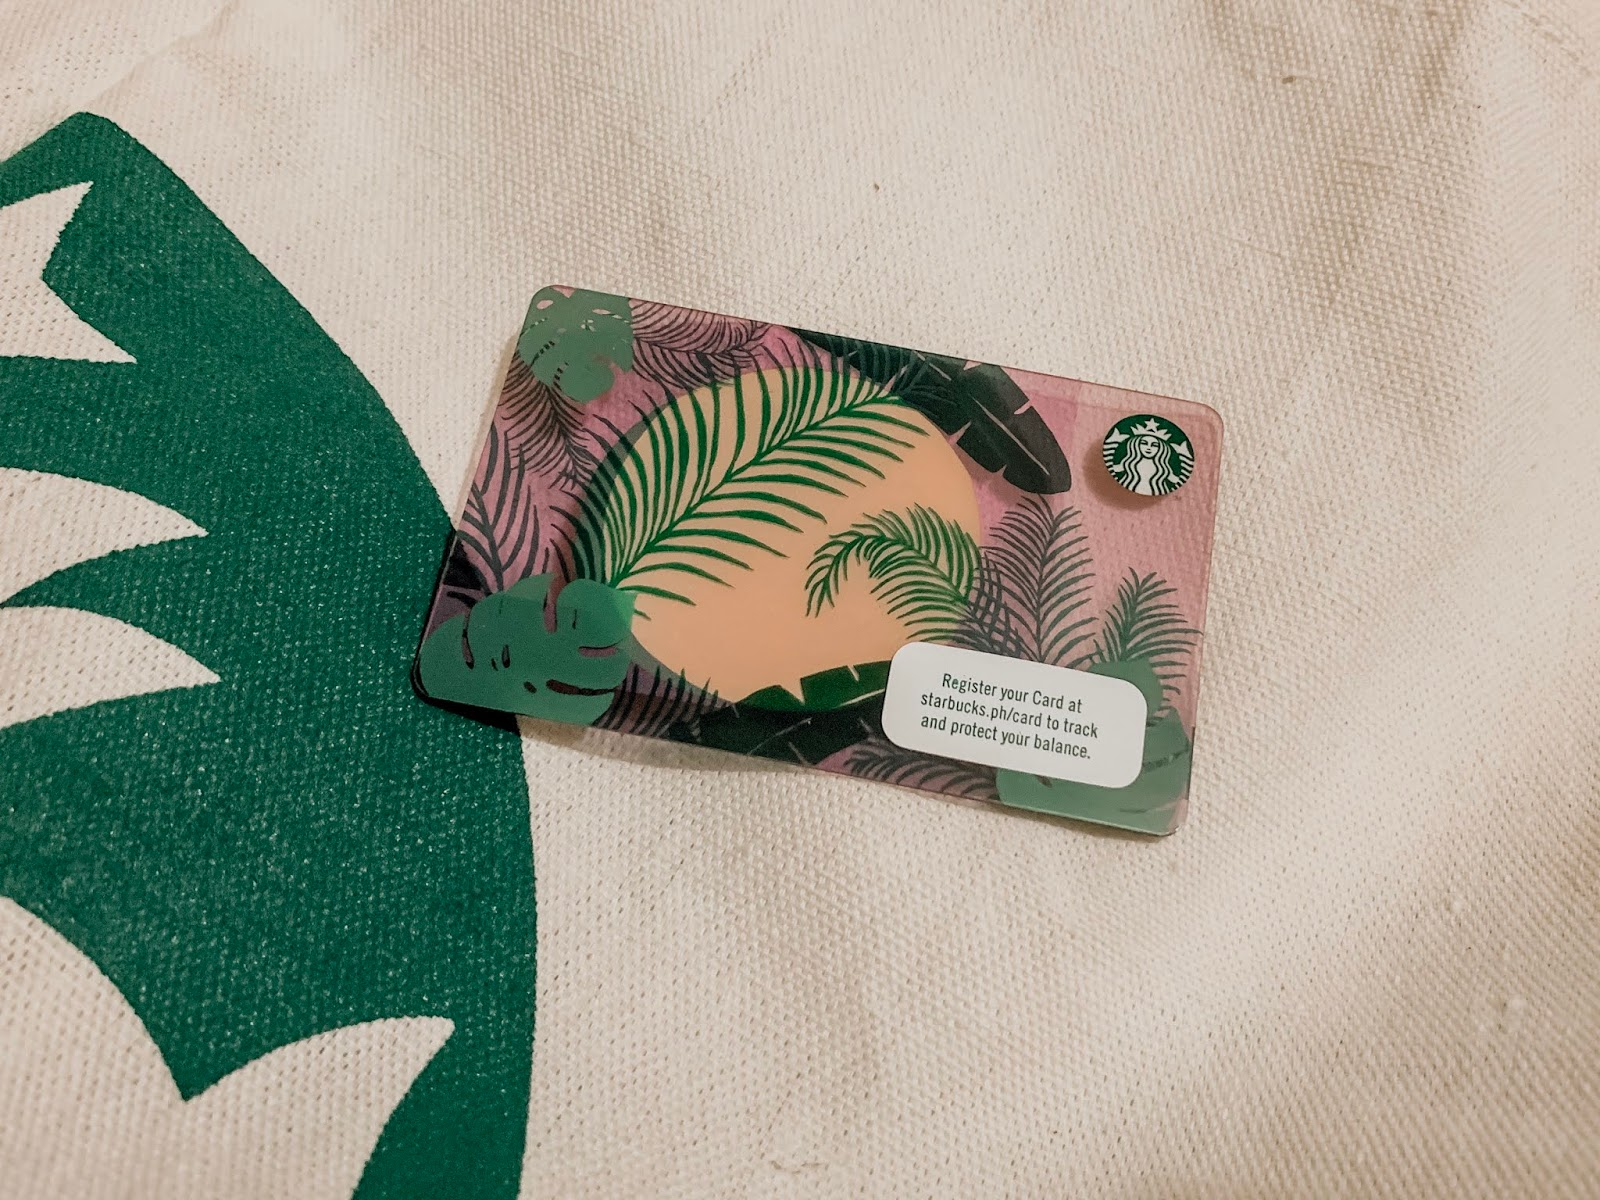 Starbucks Botanical Card Jexx Hinggo